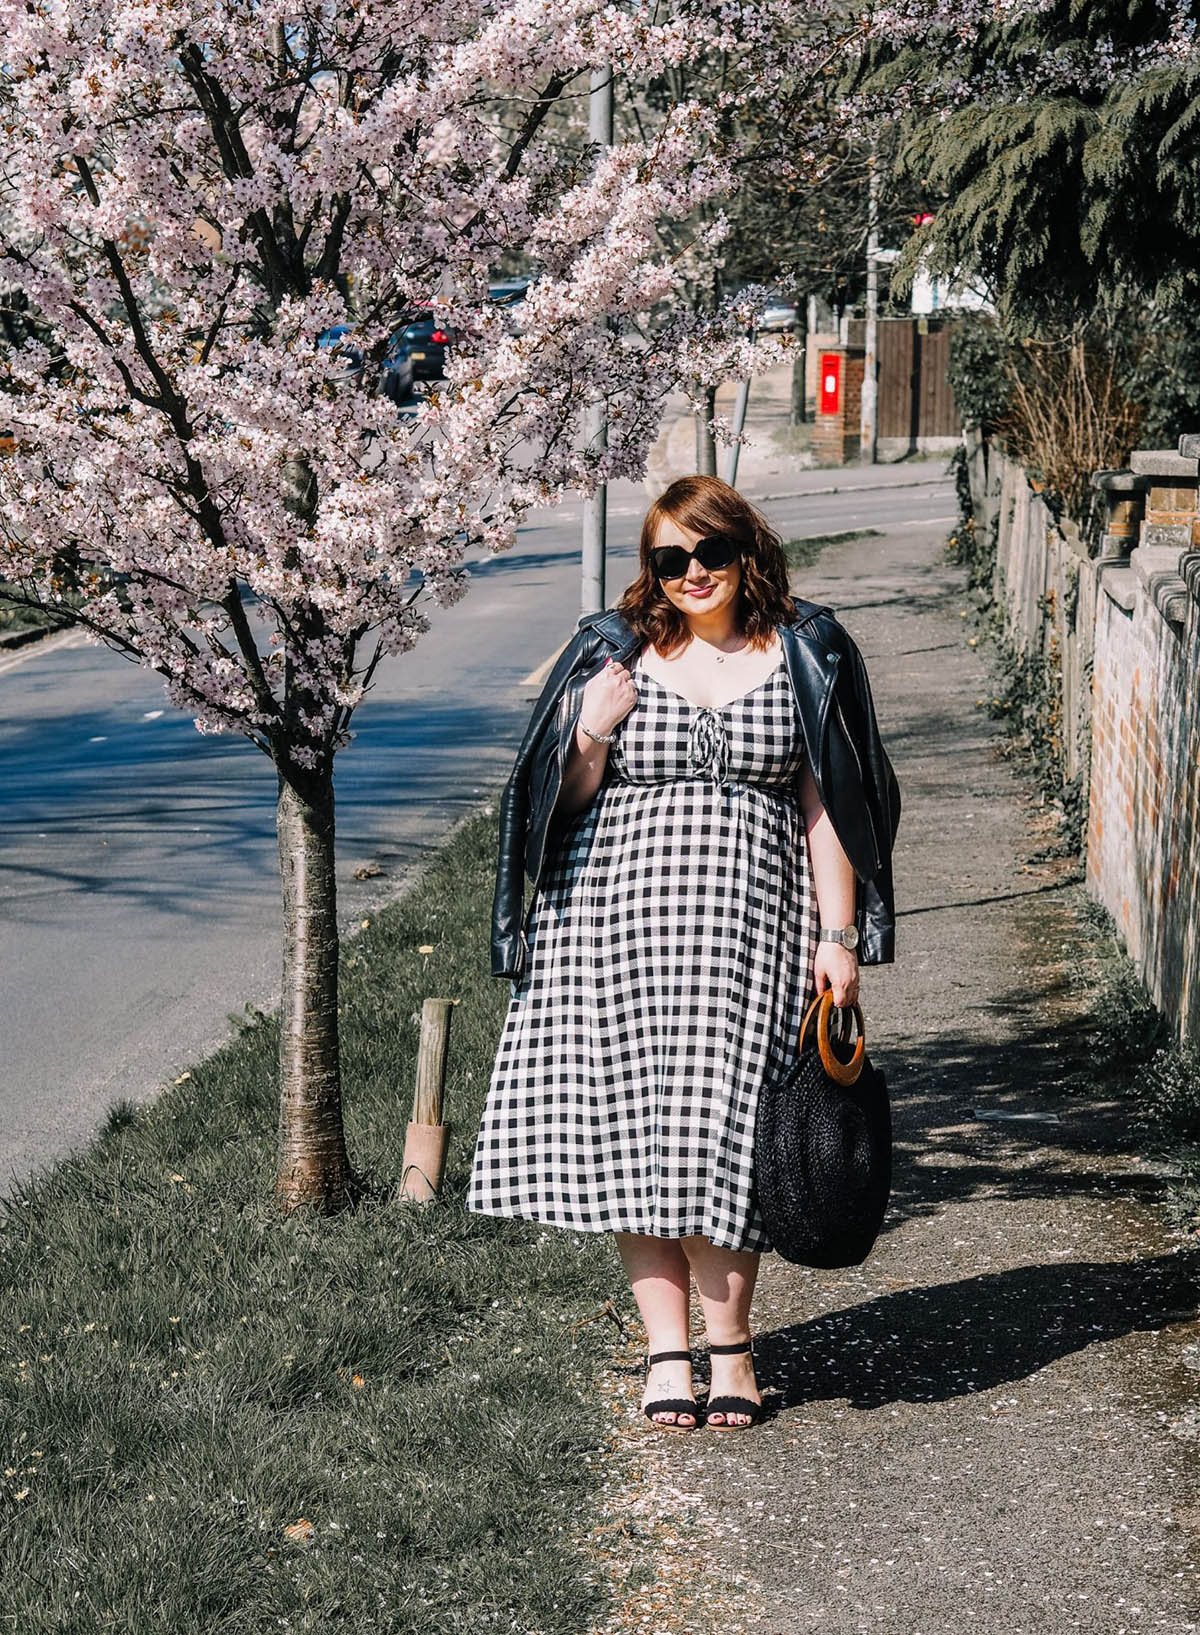 Gingham Is My Spring Go-To: The Transitional £19.99 New Look Gingham Dress Of Dreams